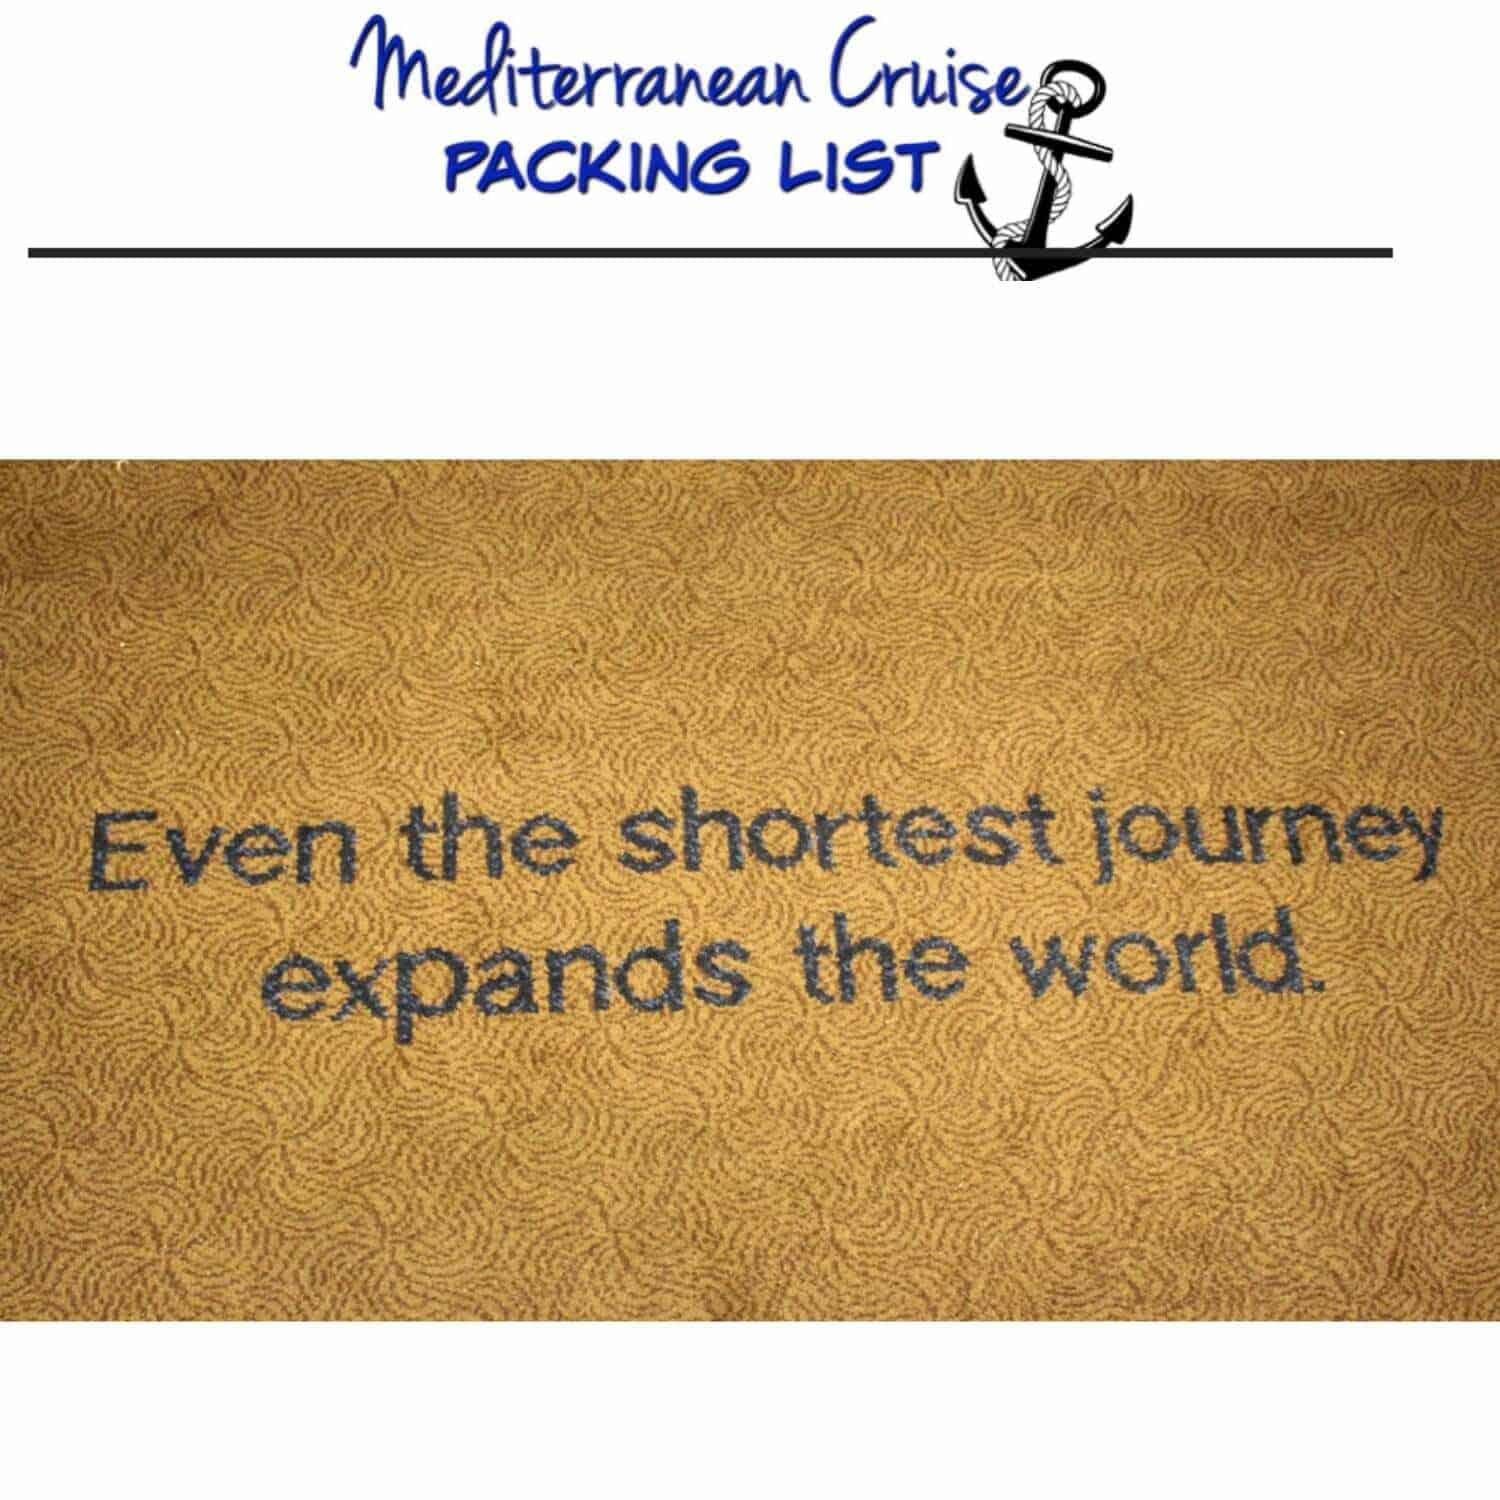 Mediterranean Cruise Packing List & 10 Things I Couldn't Live Without!